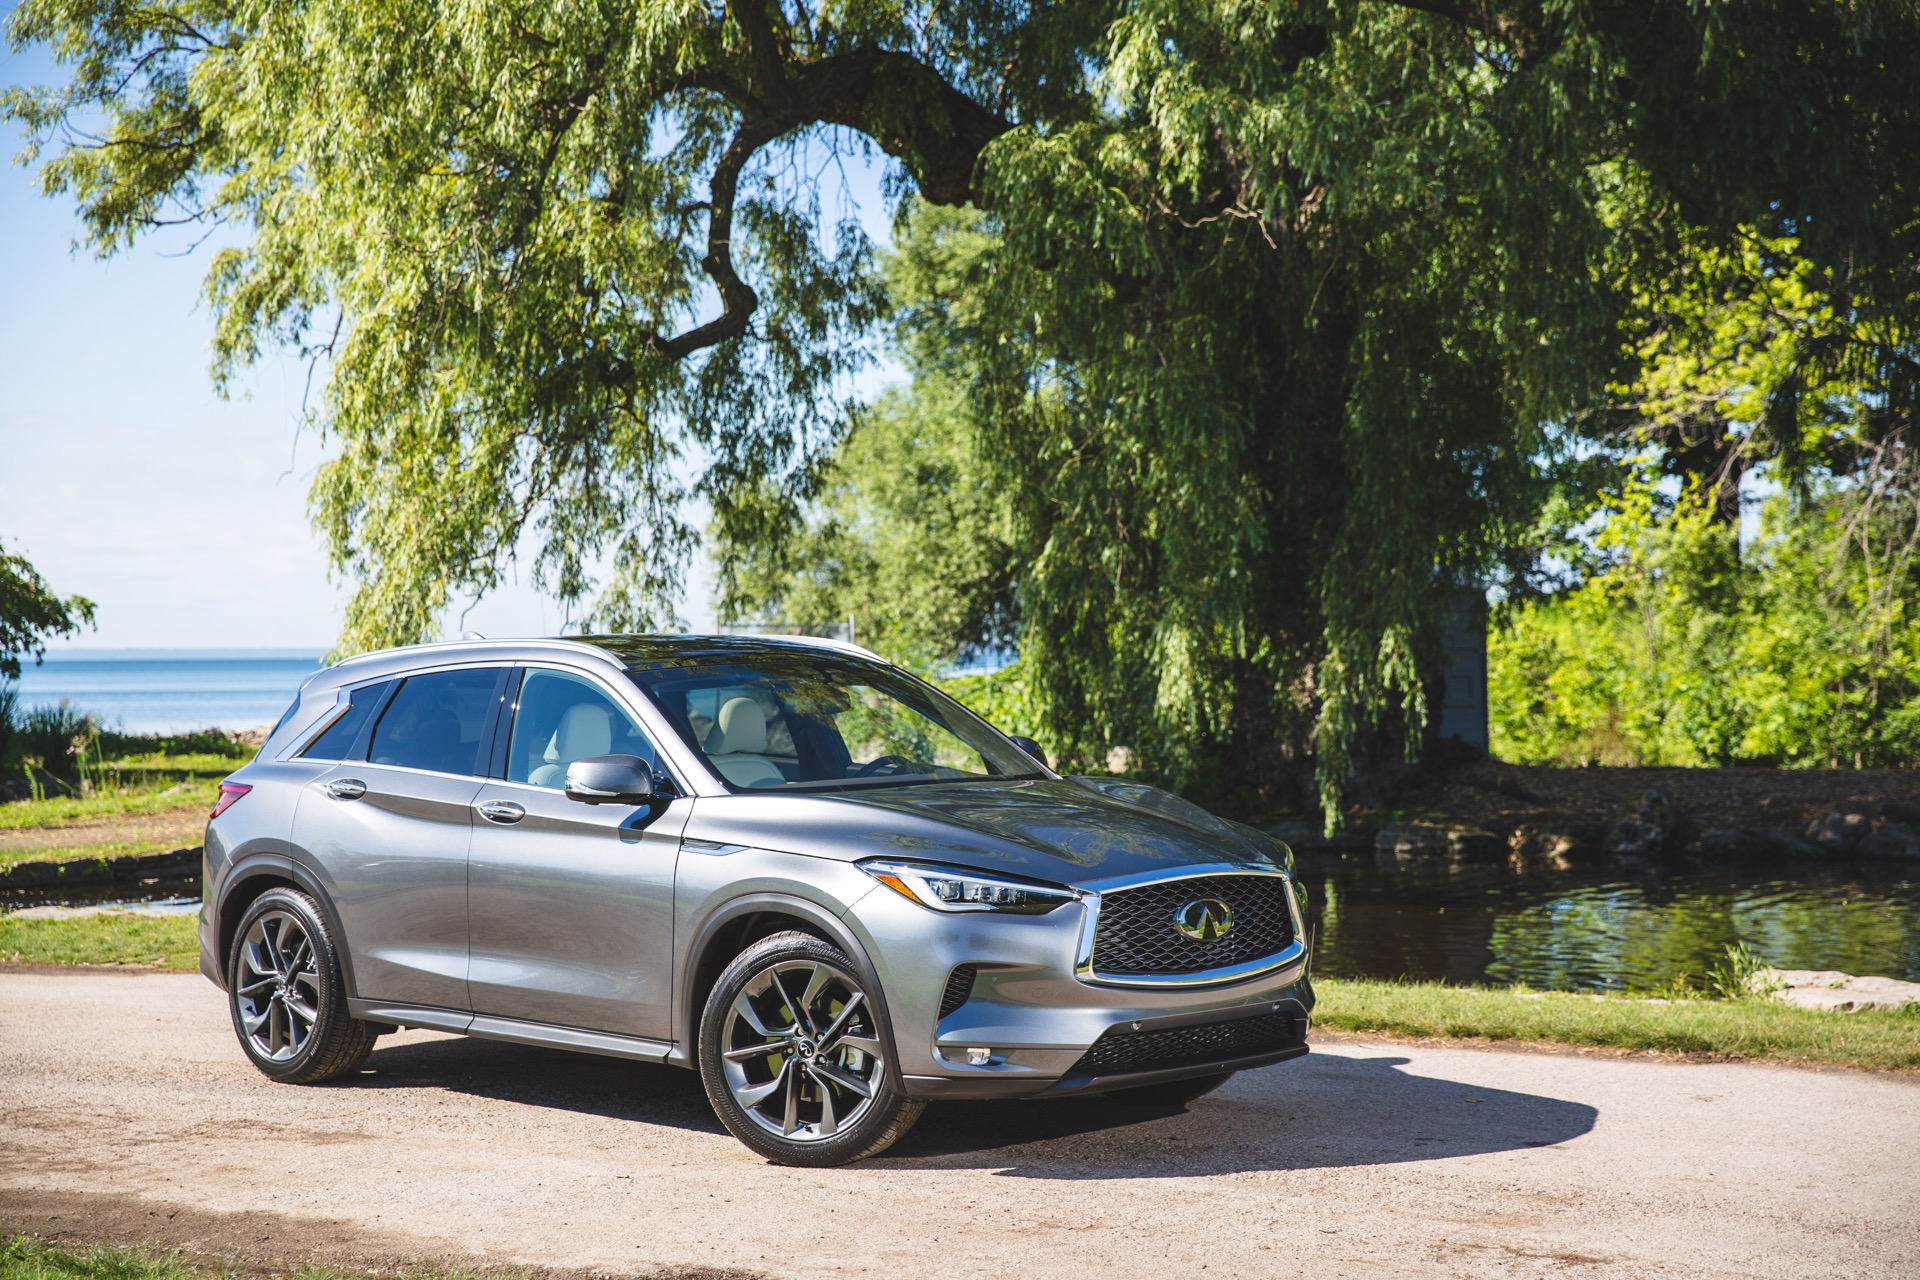 2020 INFINITI QX50 Review, Ratings, Specs, Prices, and Photos